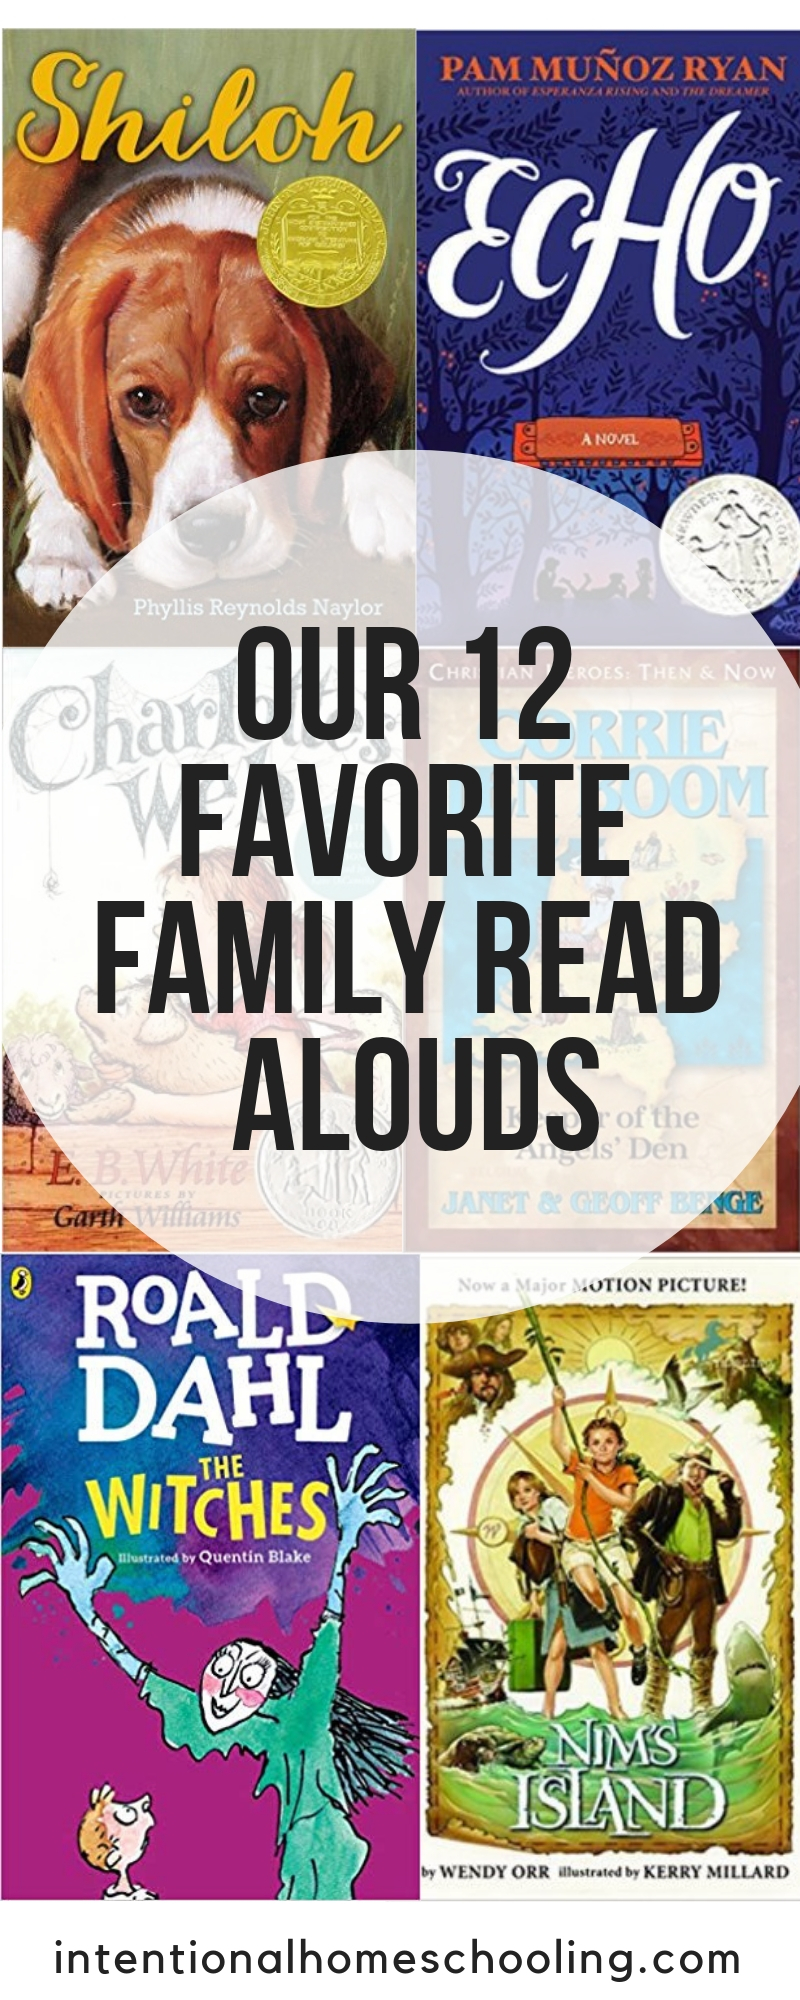 Our favorite family read aloud chapter books that we read in 2018